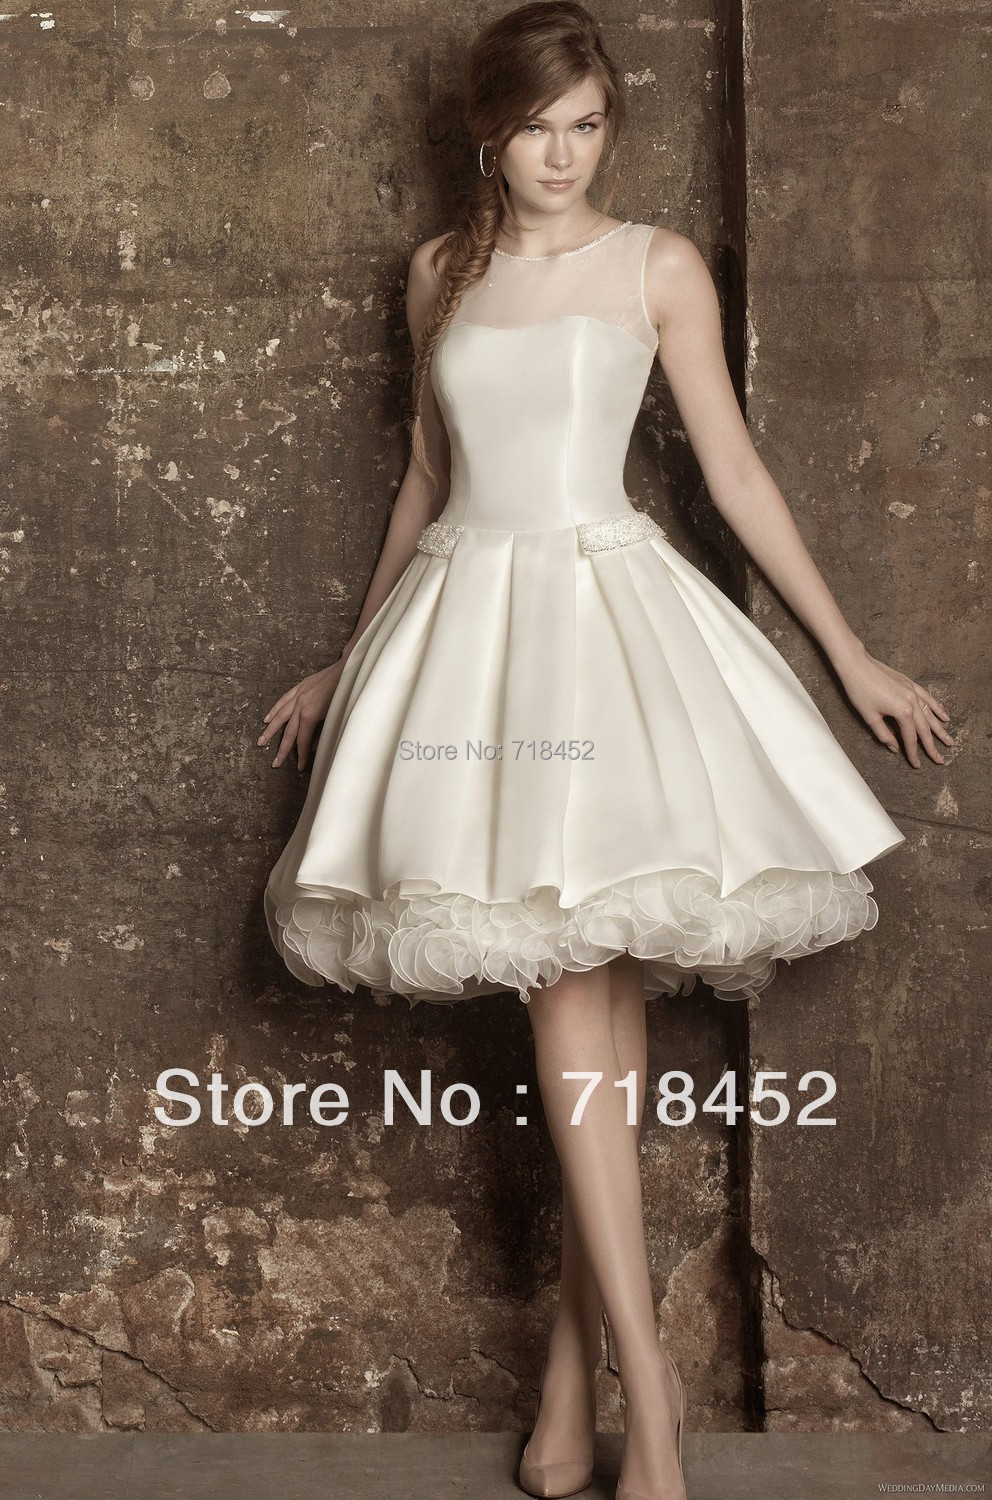 New Style Wedding Dress: New Arrival 2013 Wedding Dress Ball Gown Princess Style A